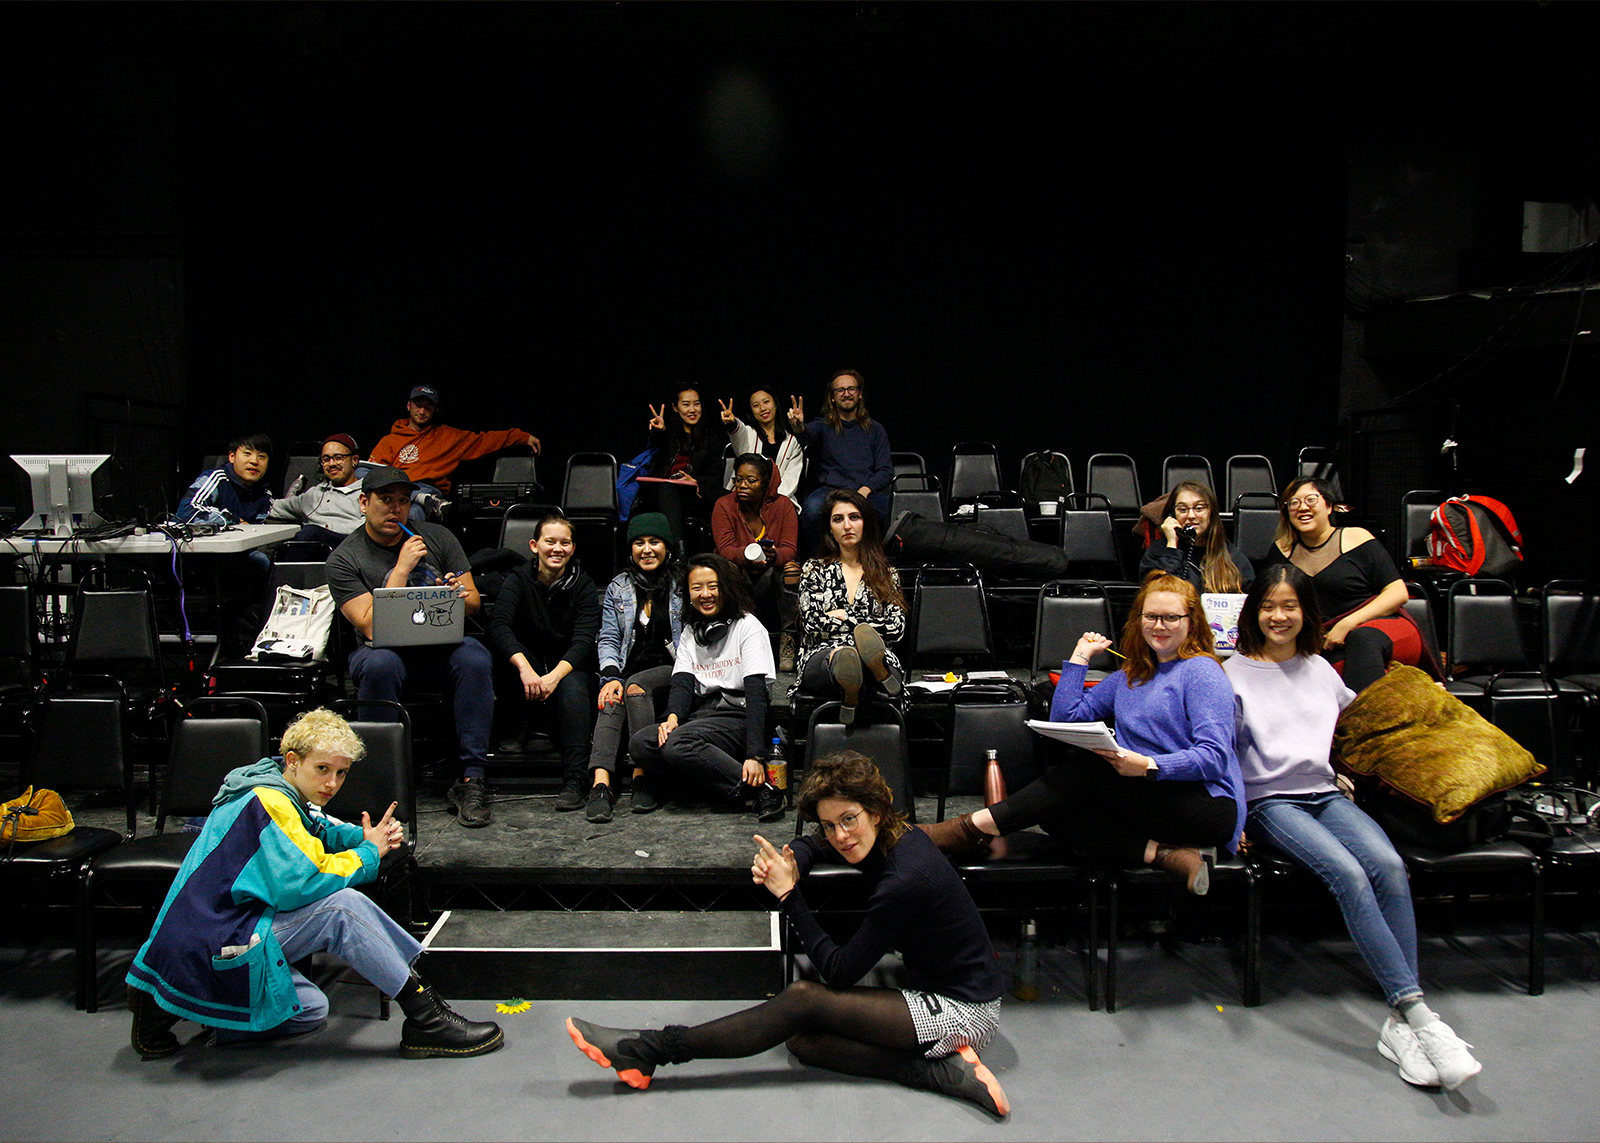 Group photo after tech of 'Machinal', December 2019.